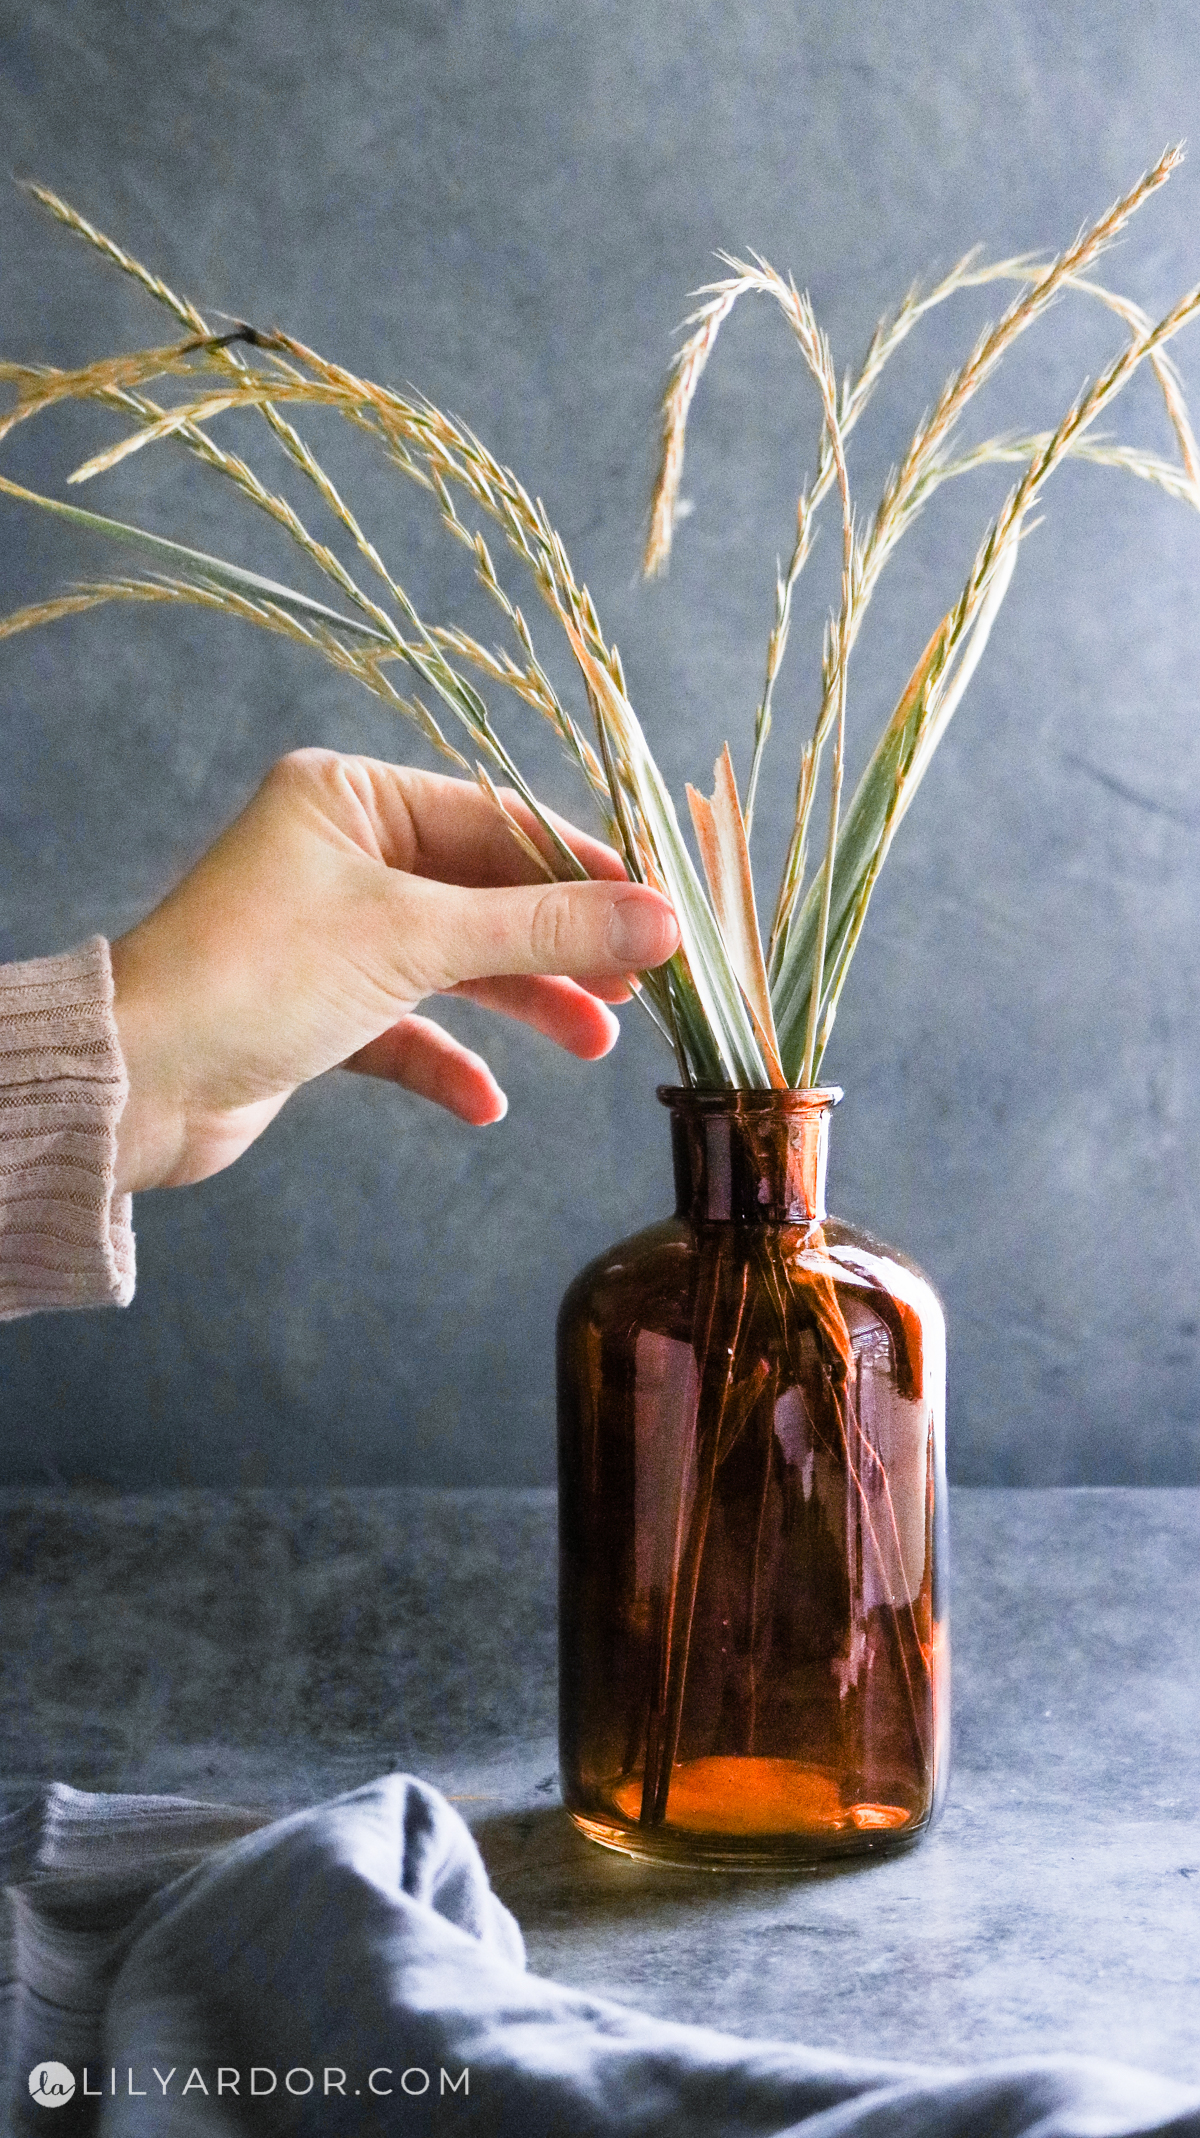 photo of the amber brown glass vase and wheat